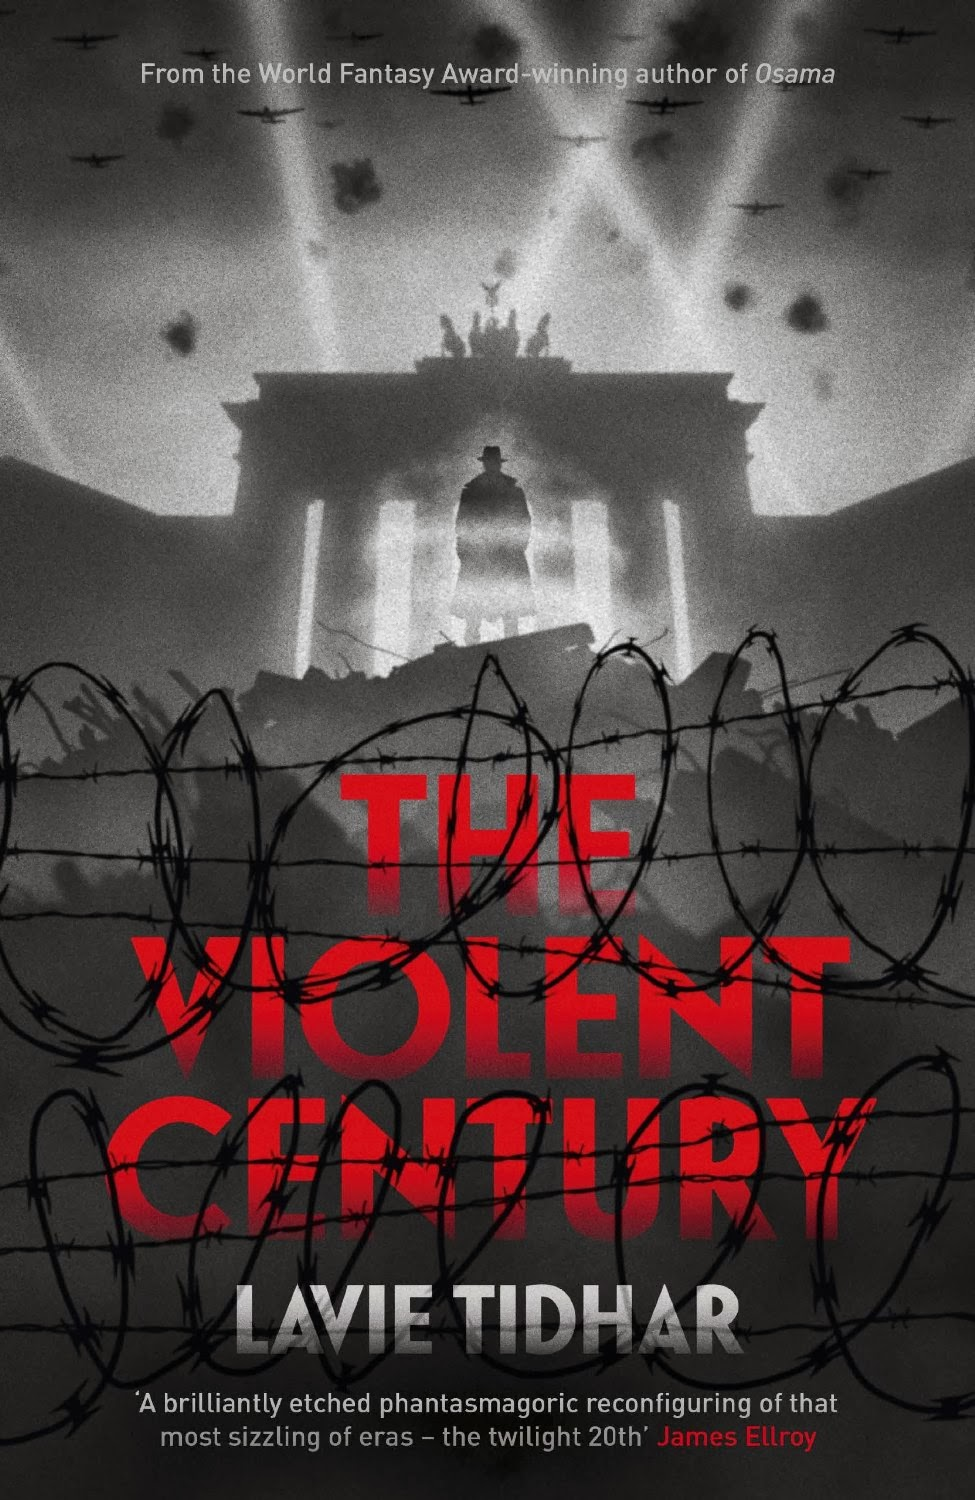 violent century lavie tidhar - The Hattie Awards 2013!!! Or the best books of 2013 (That I've read)